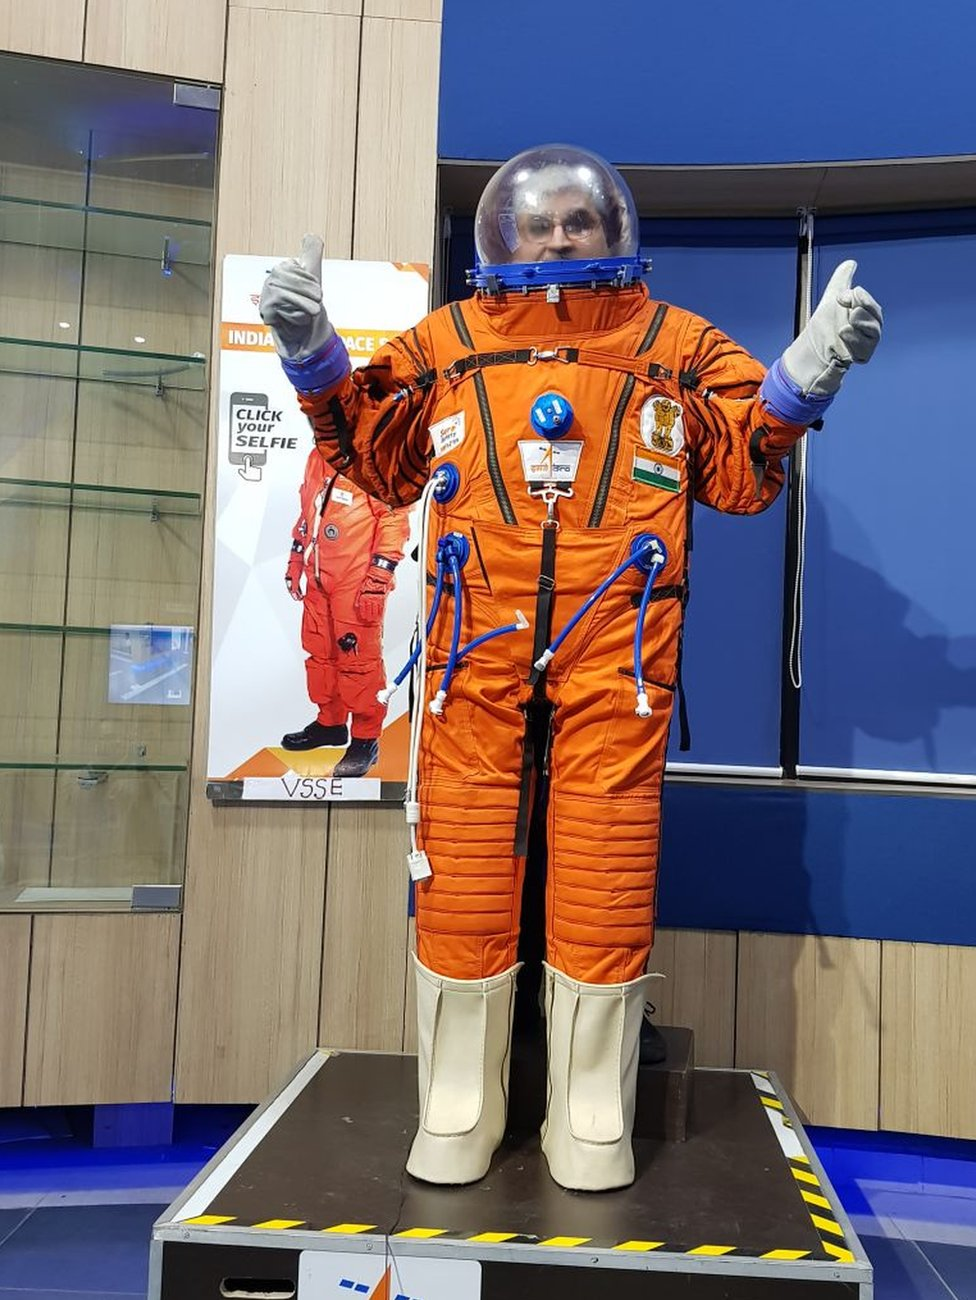 A prototype Indian-made space suit is displayed on 14 August 2018 at the Space Applications Center in Ahmedabad.